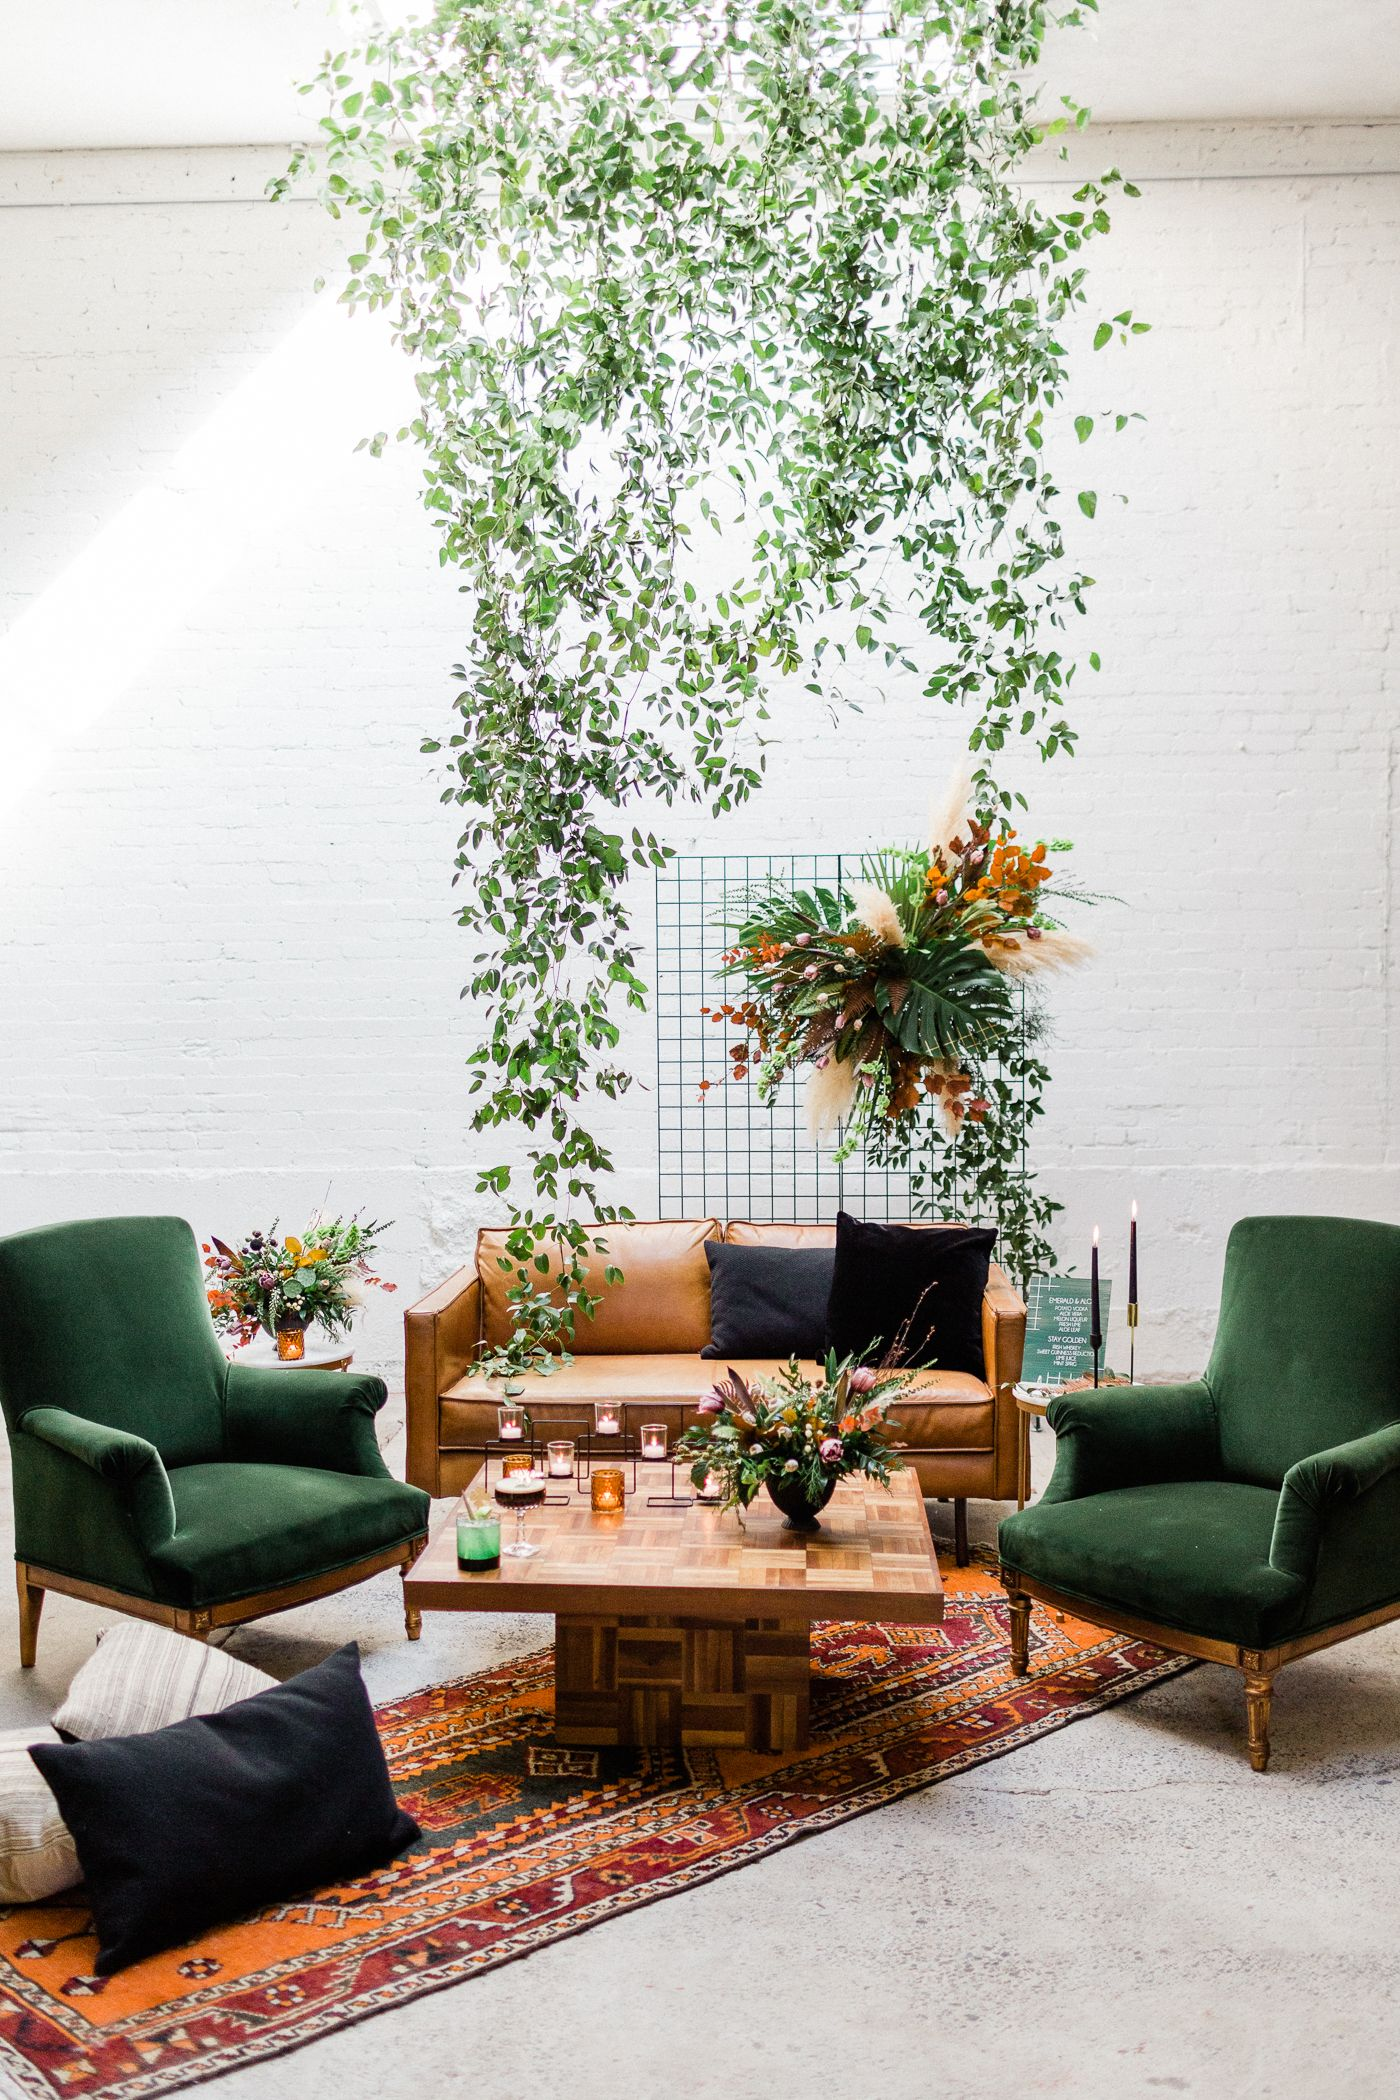 Stupendous Event Lounge Inspiration With Green Velvet Chairs Leather Theyellowbook Wood Chair Design Ideas Theyellowbookinfo